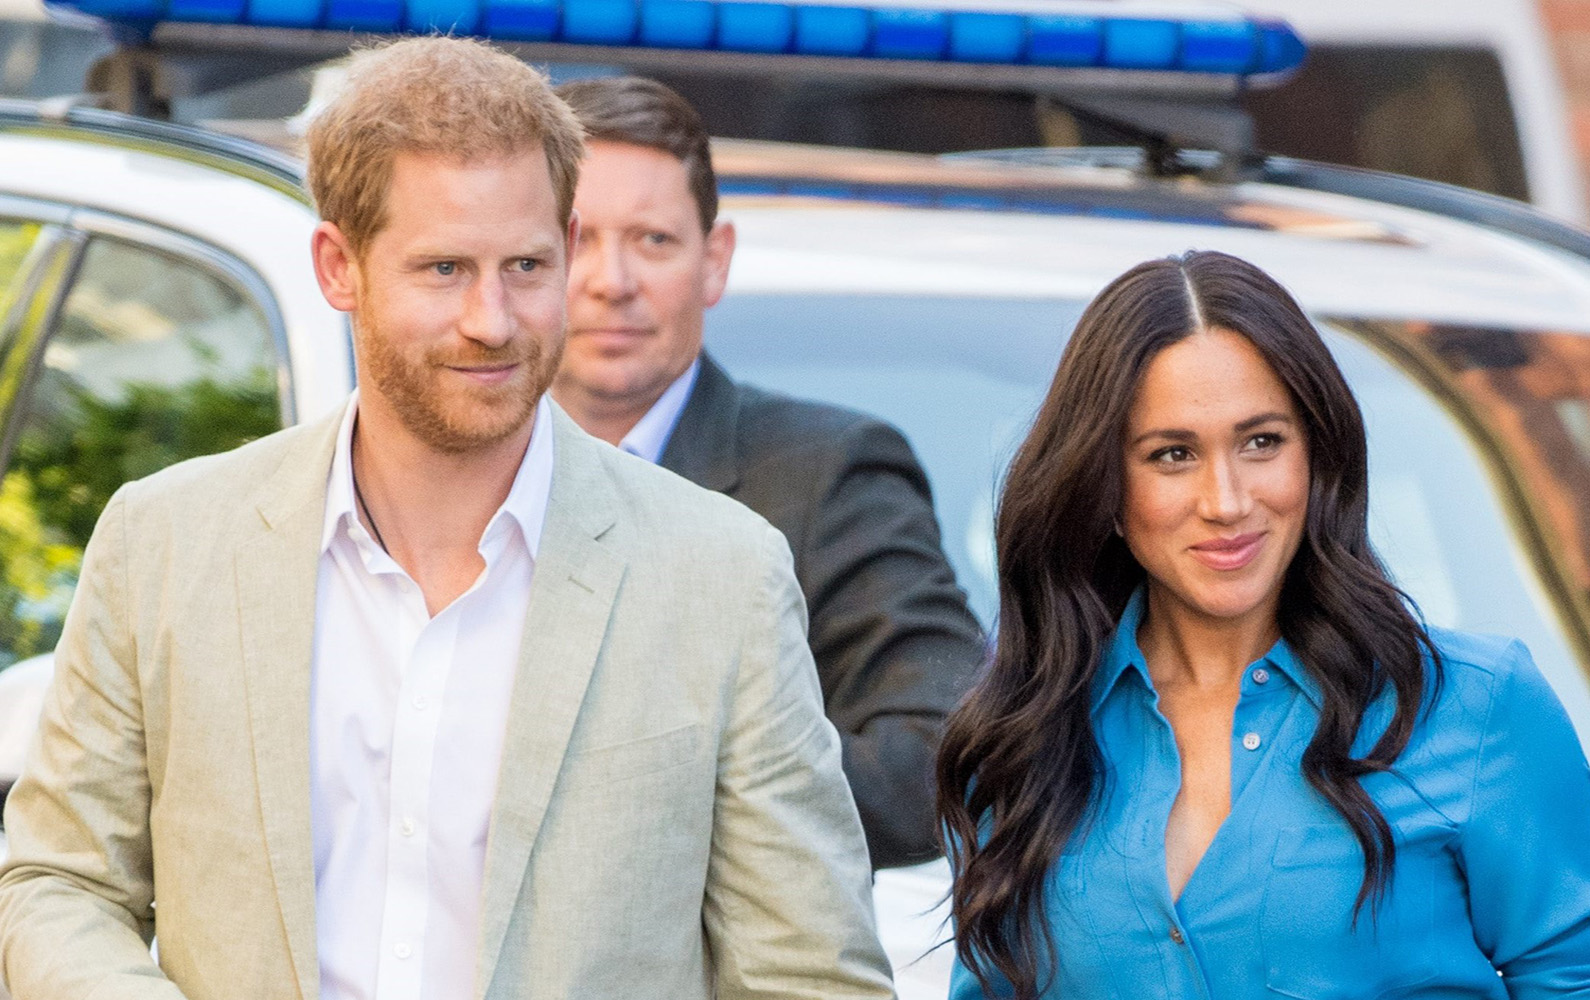 Harry and Meghan 'put up privacy screens around LA mansion after quitting royal family'